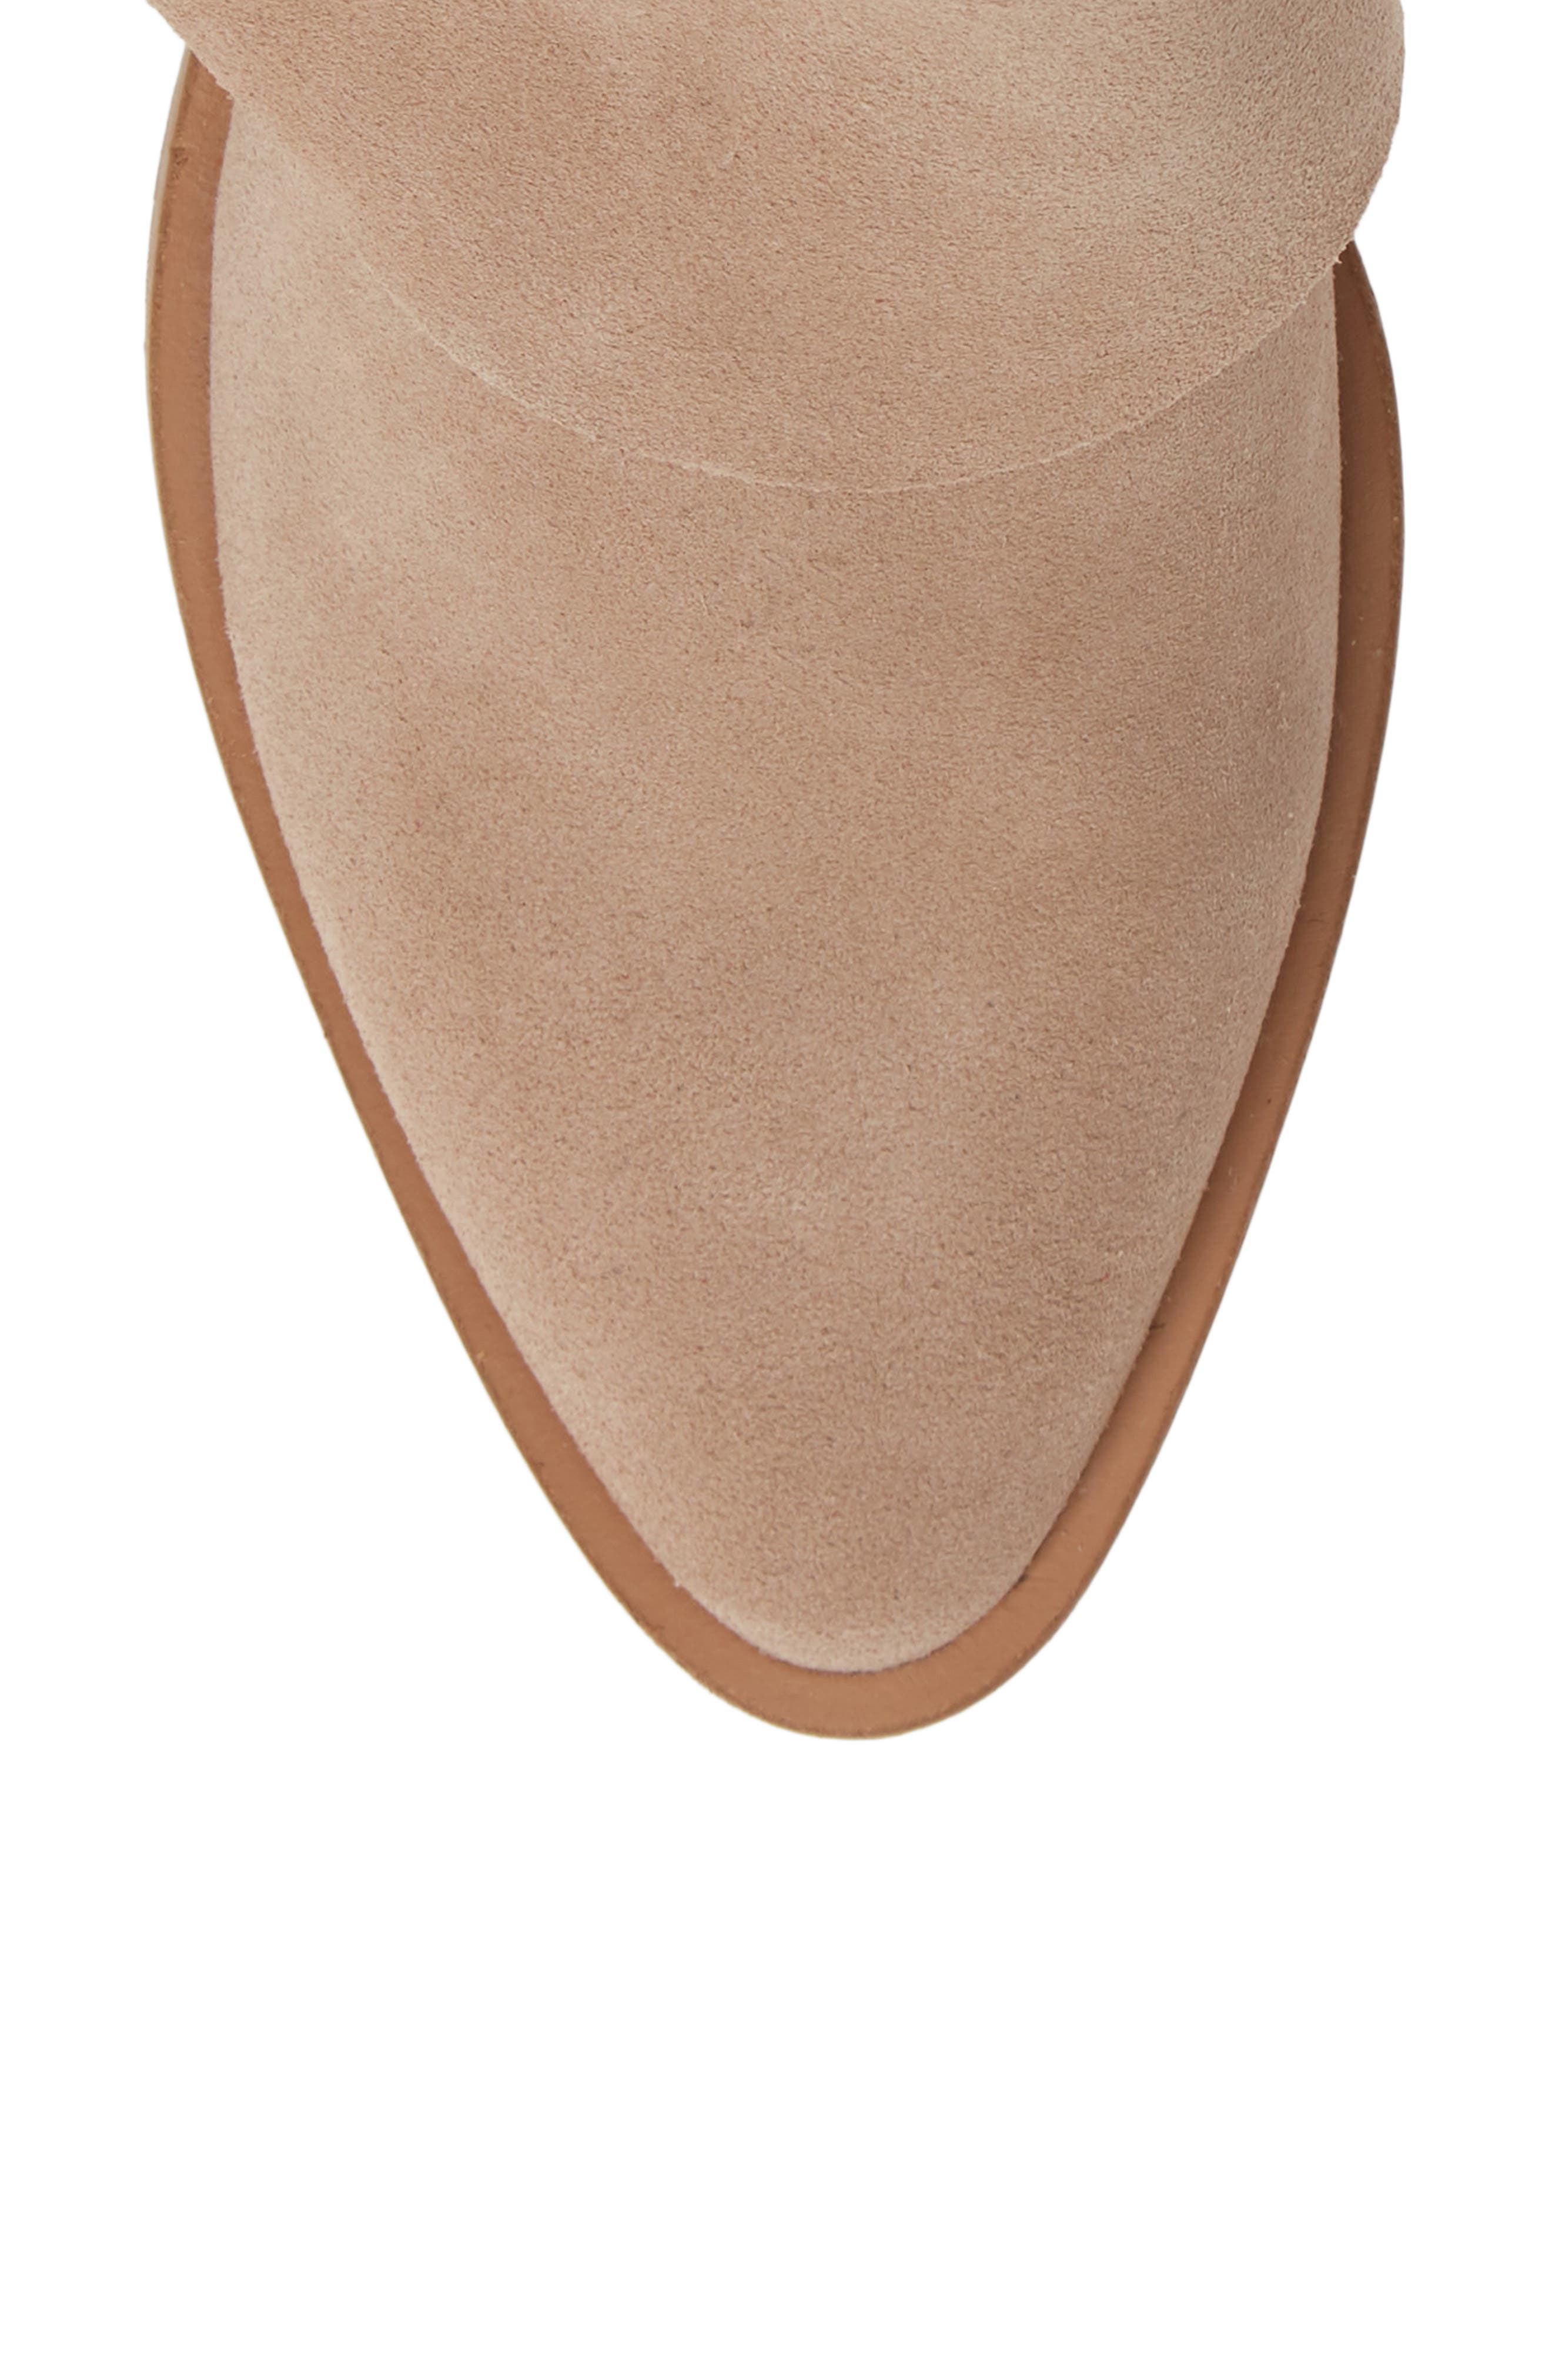 Natalyia Bootie,                             Alternate thumbnail 5, color,                             WARM TAUPE SUEDE